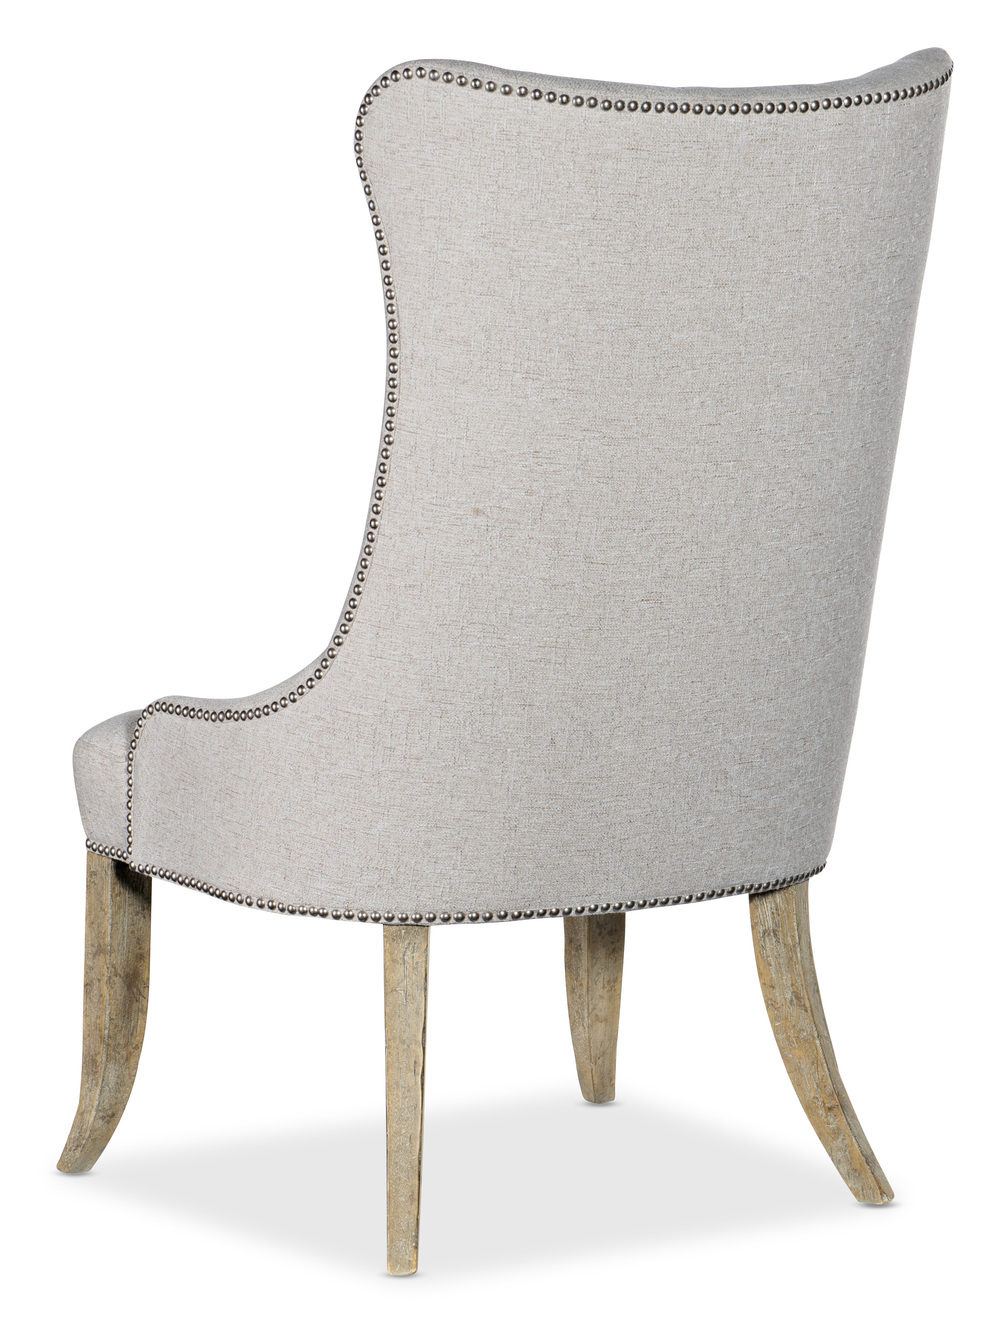 Hooker Furniture - Tufted Dining Chair